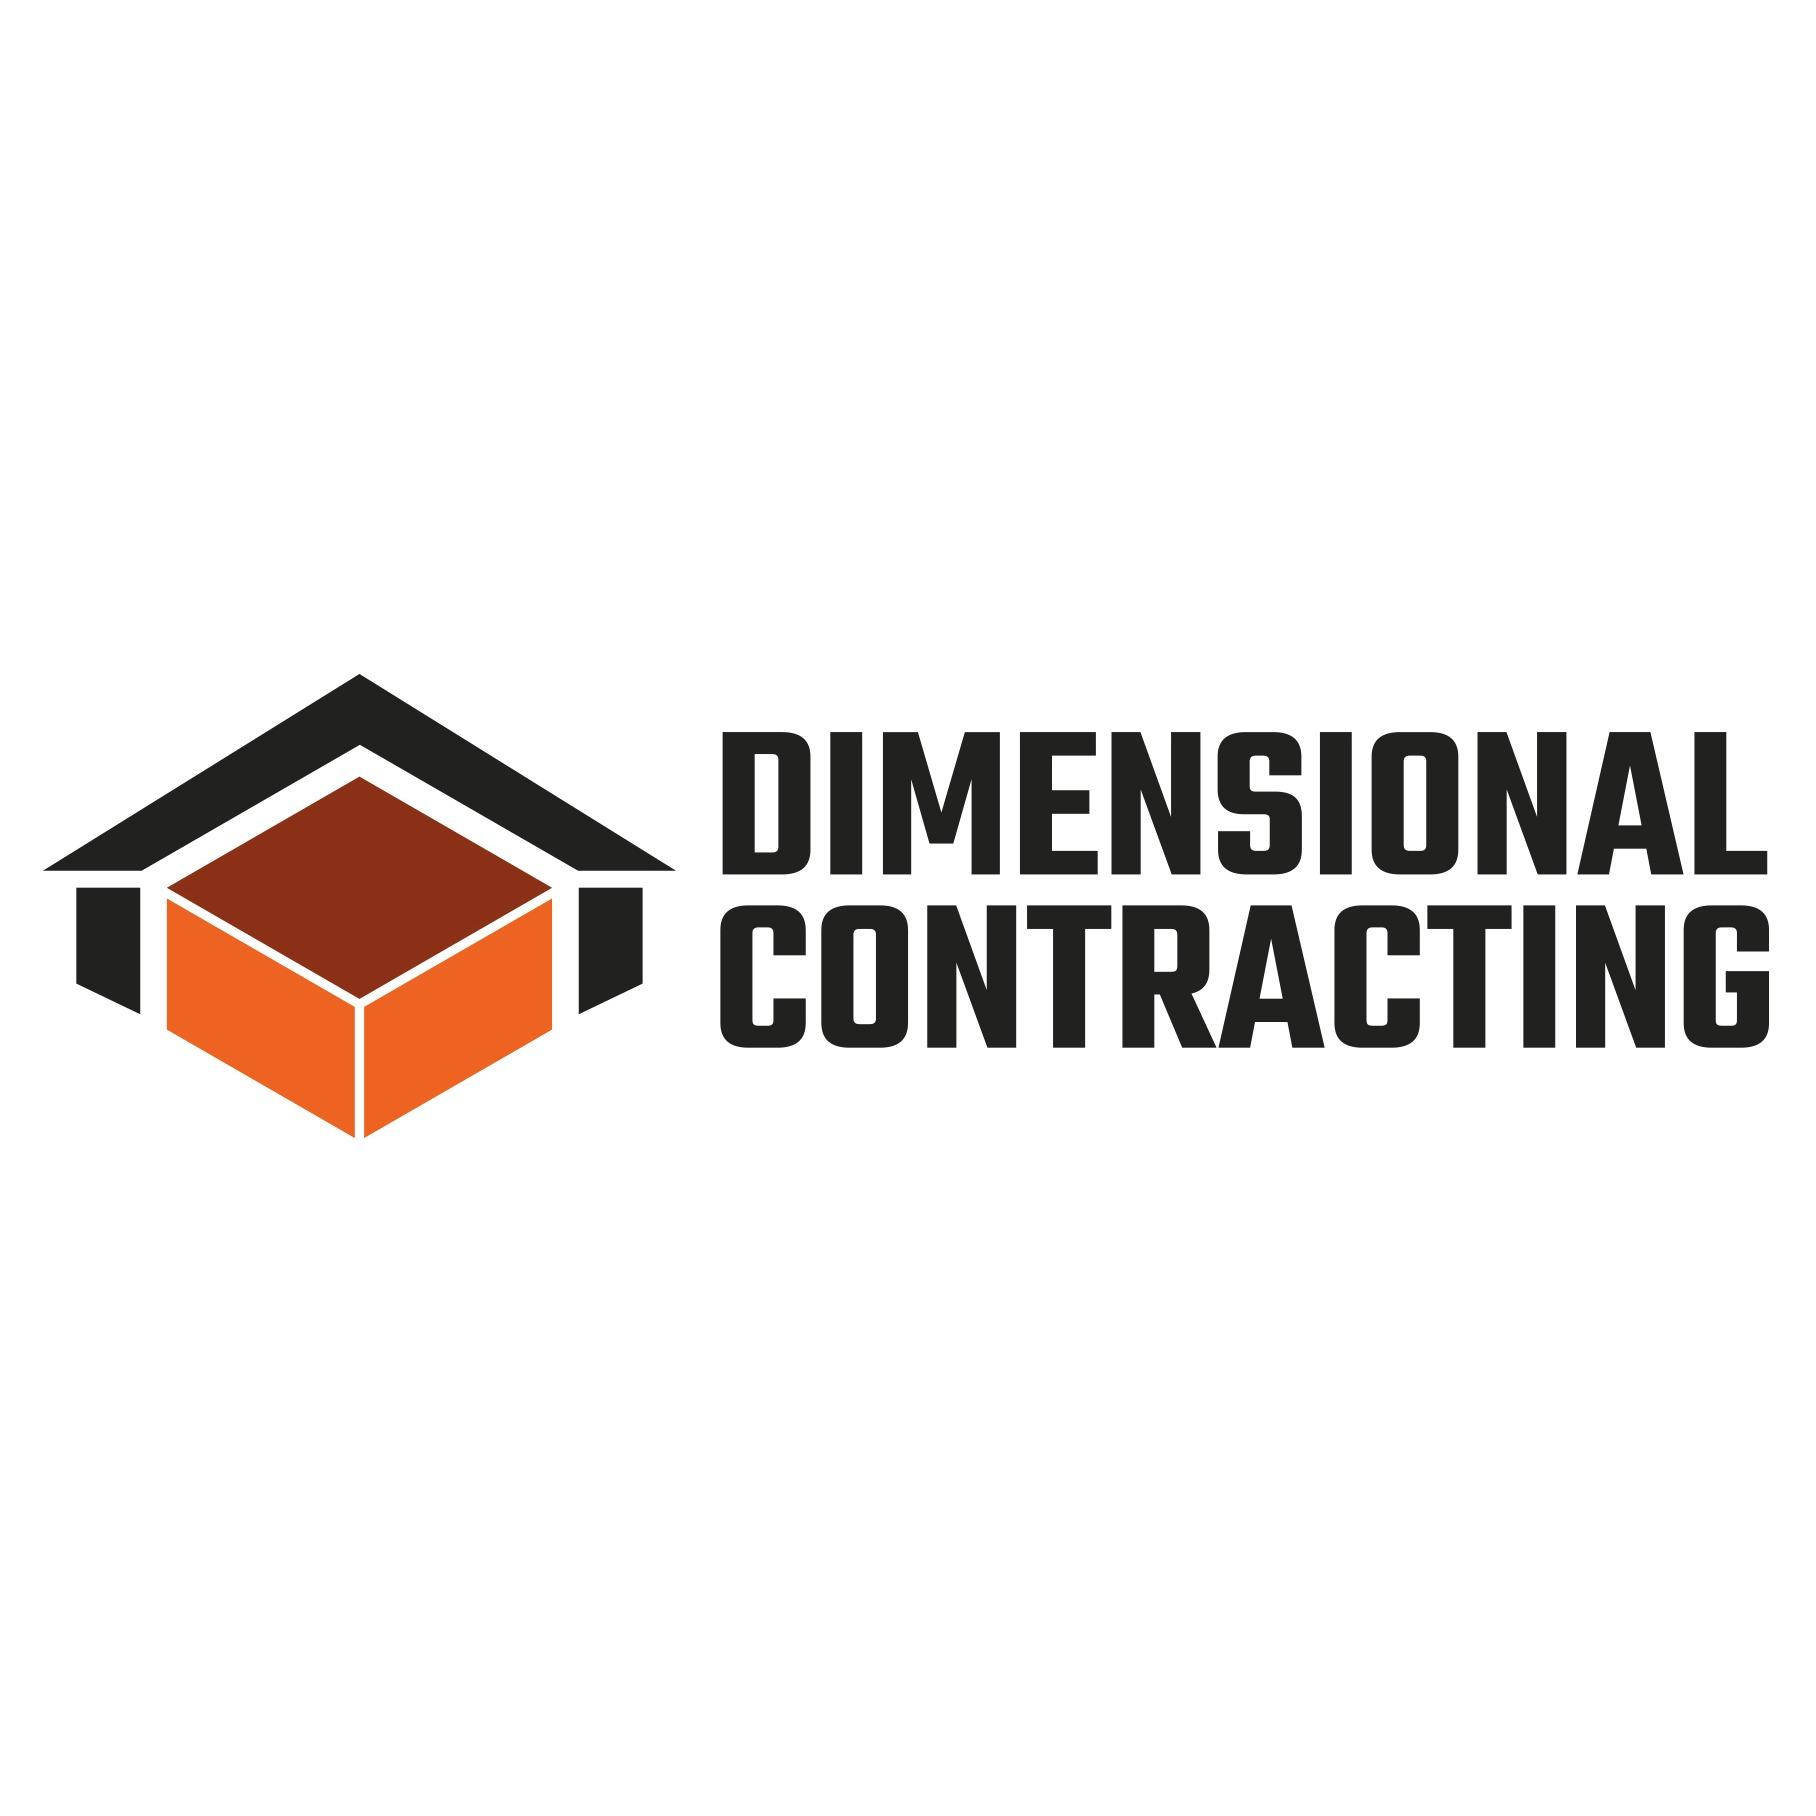 Dimensional Contracting